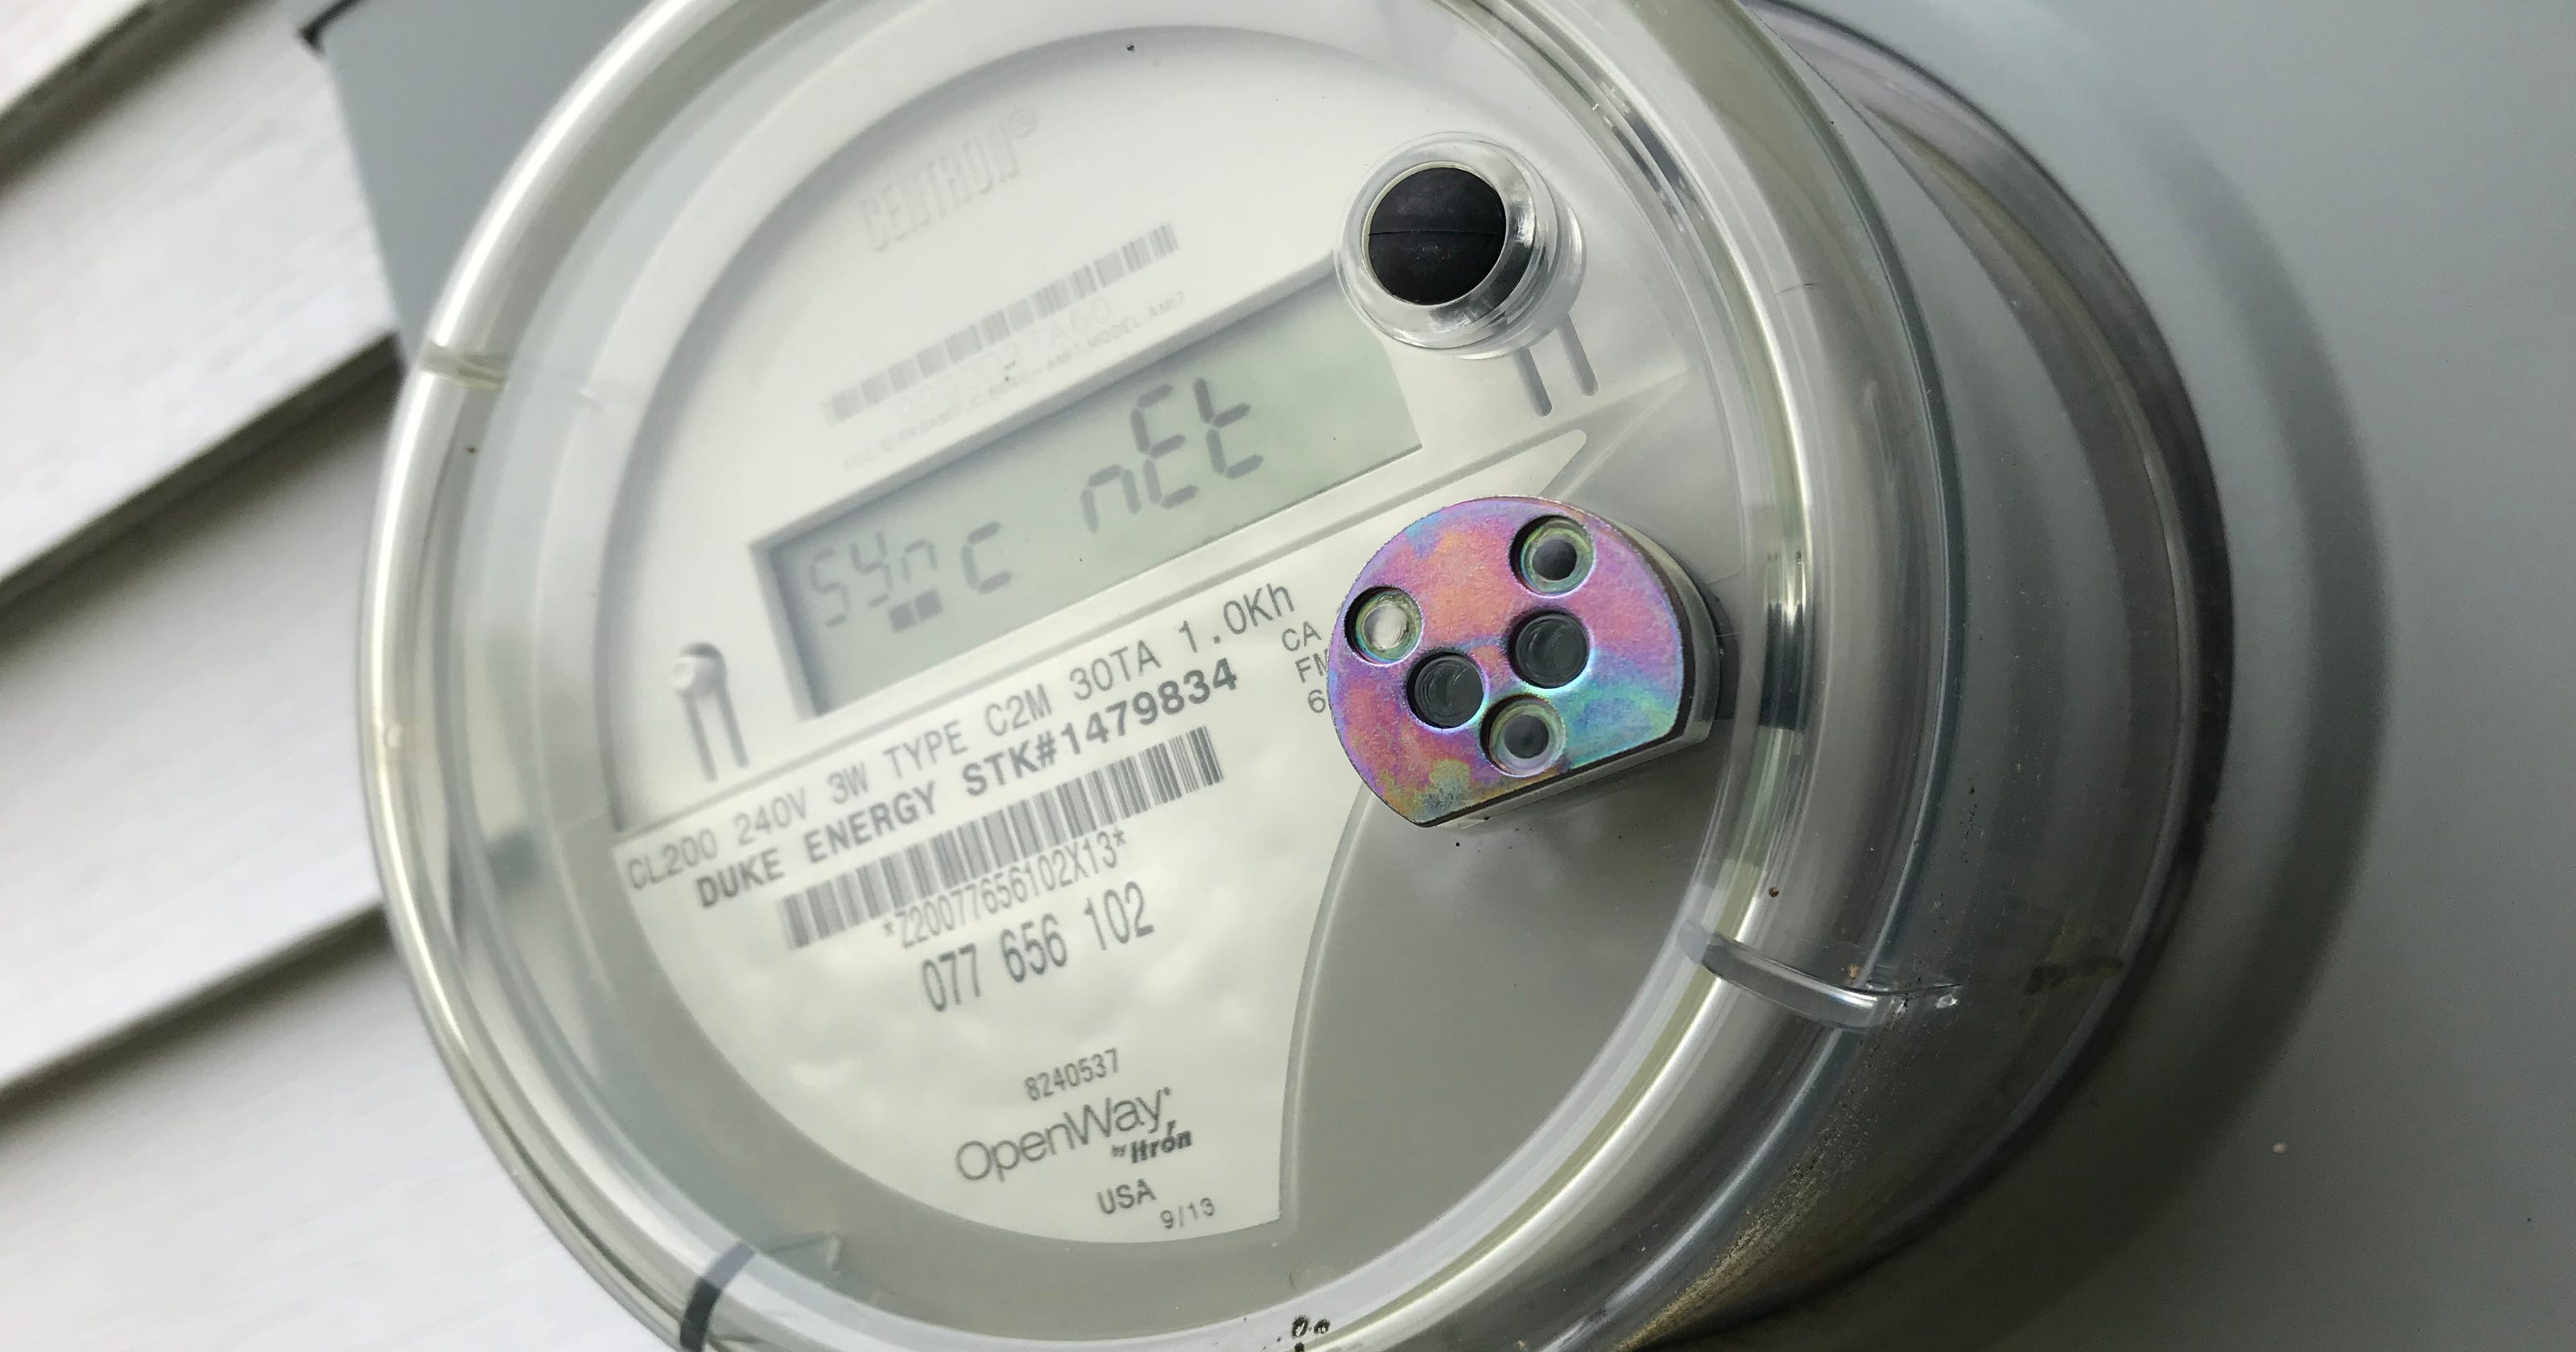 Shocking' electric bills spark concern about Duke Energy smart meters